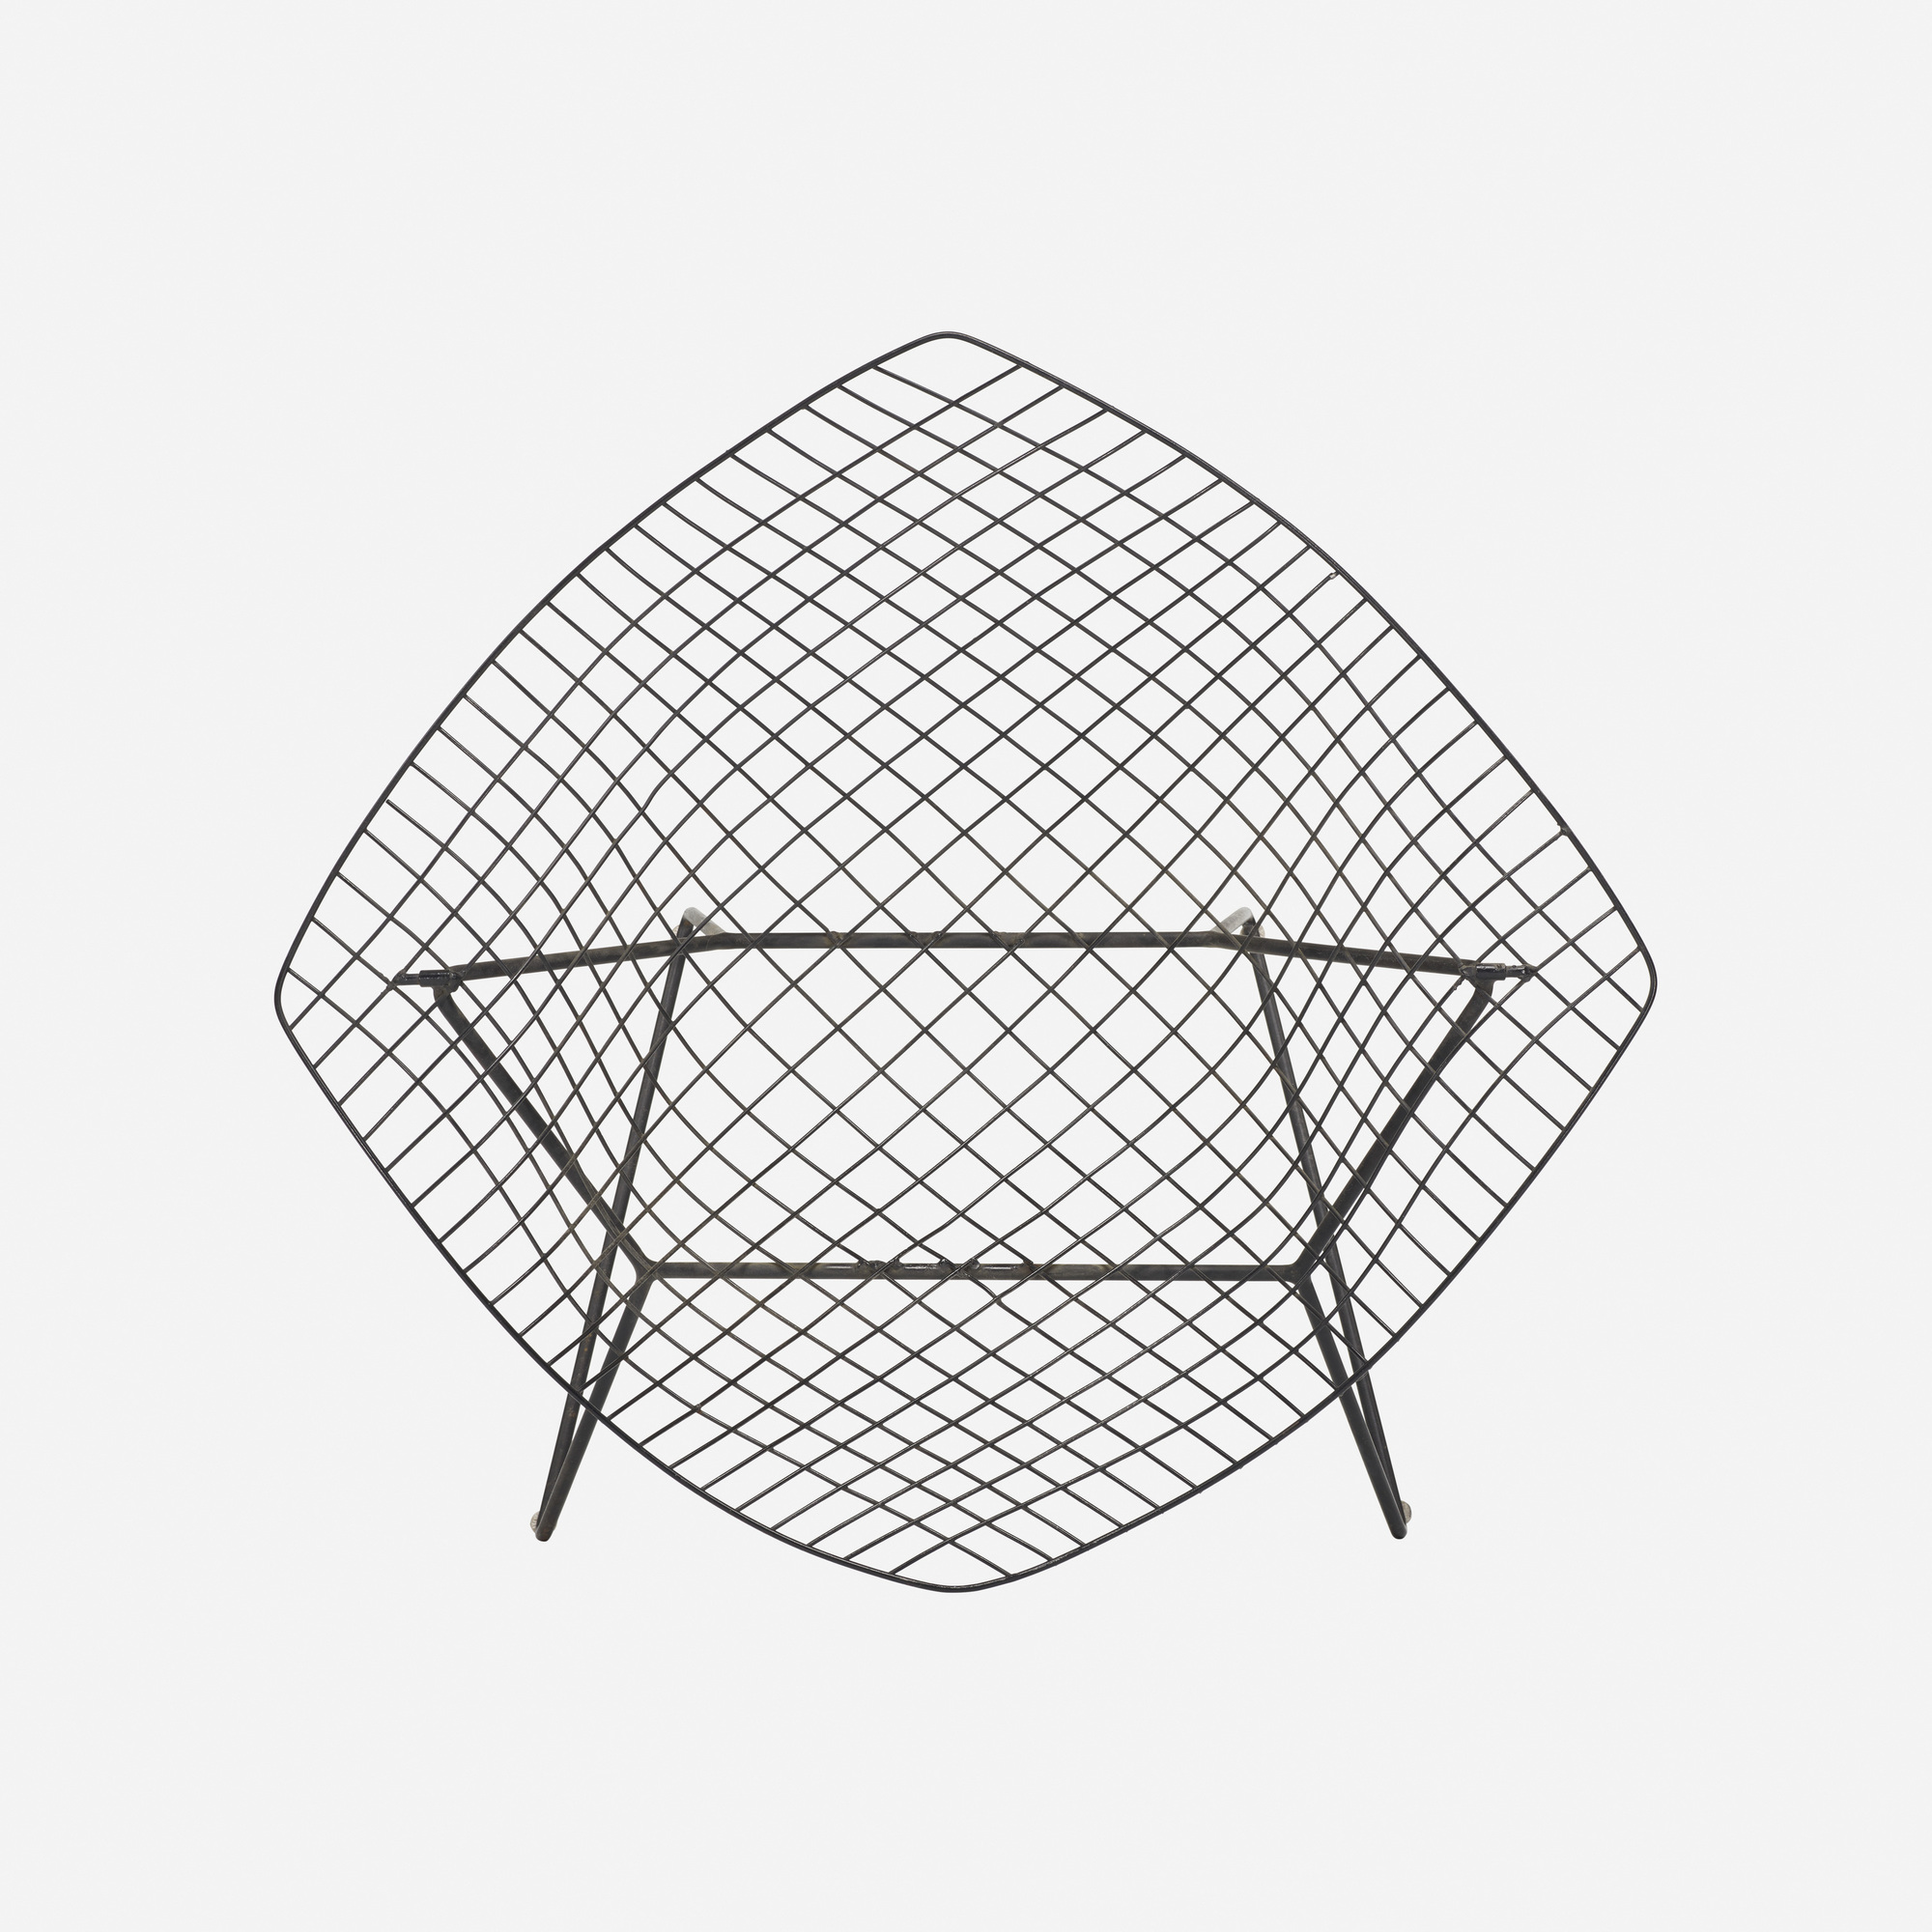 139 Harry Bertoia prototype Diamond chair Design 24 March